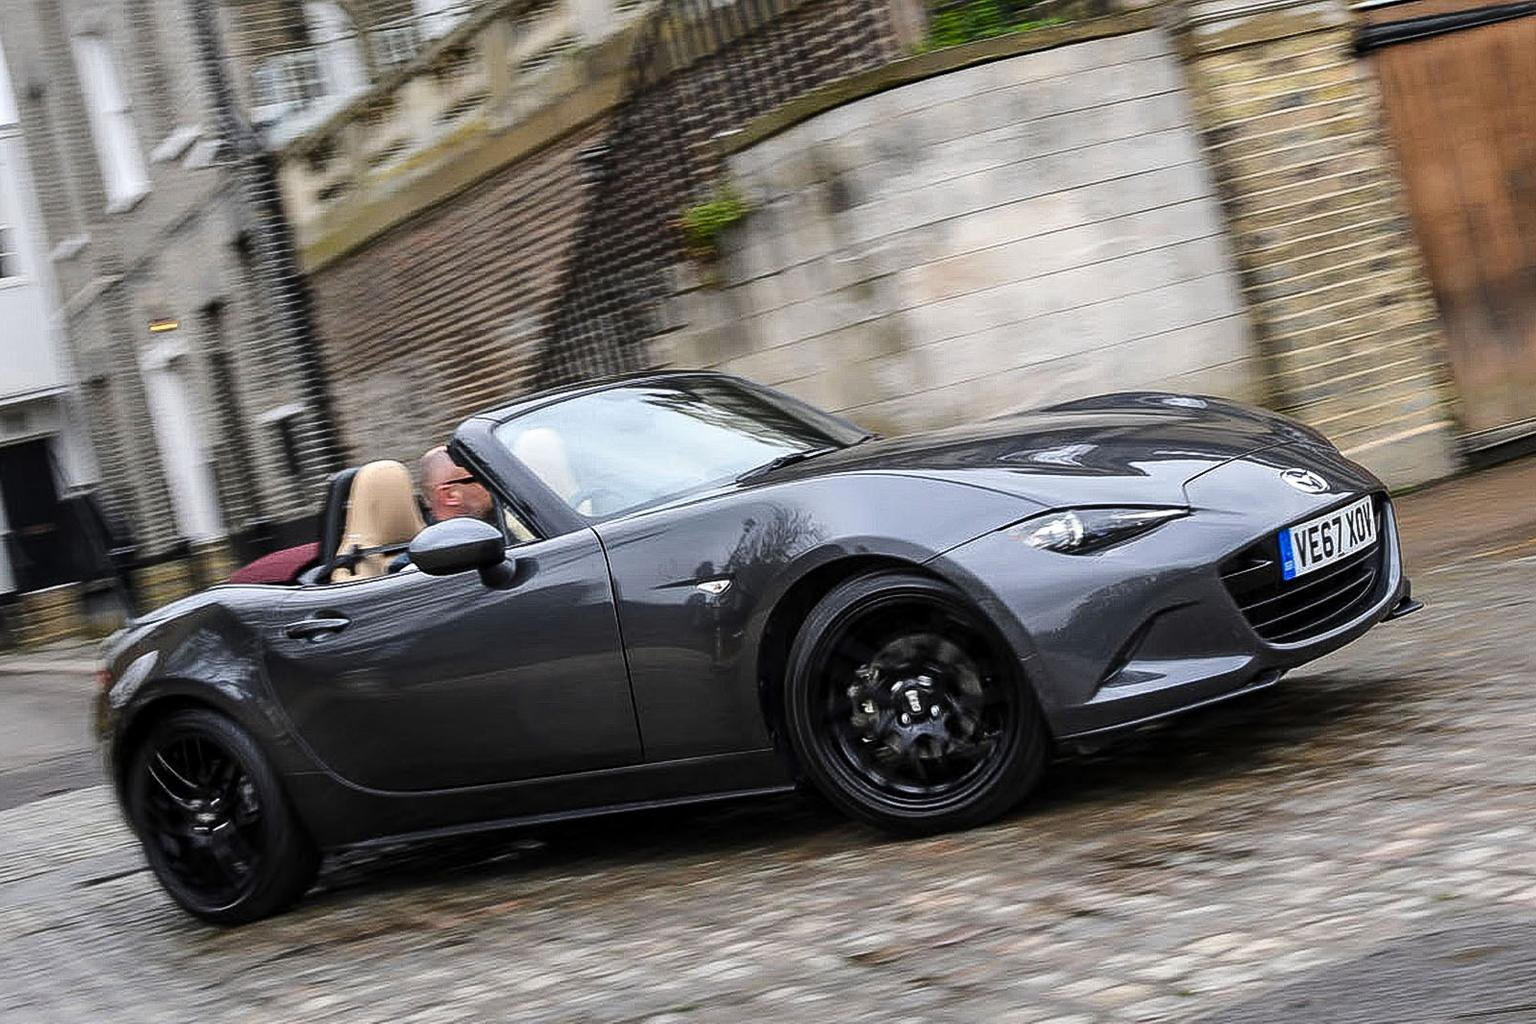 2018 Mazda MX-5 Z-Sport review - price, specs and release date